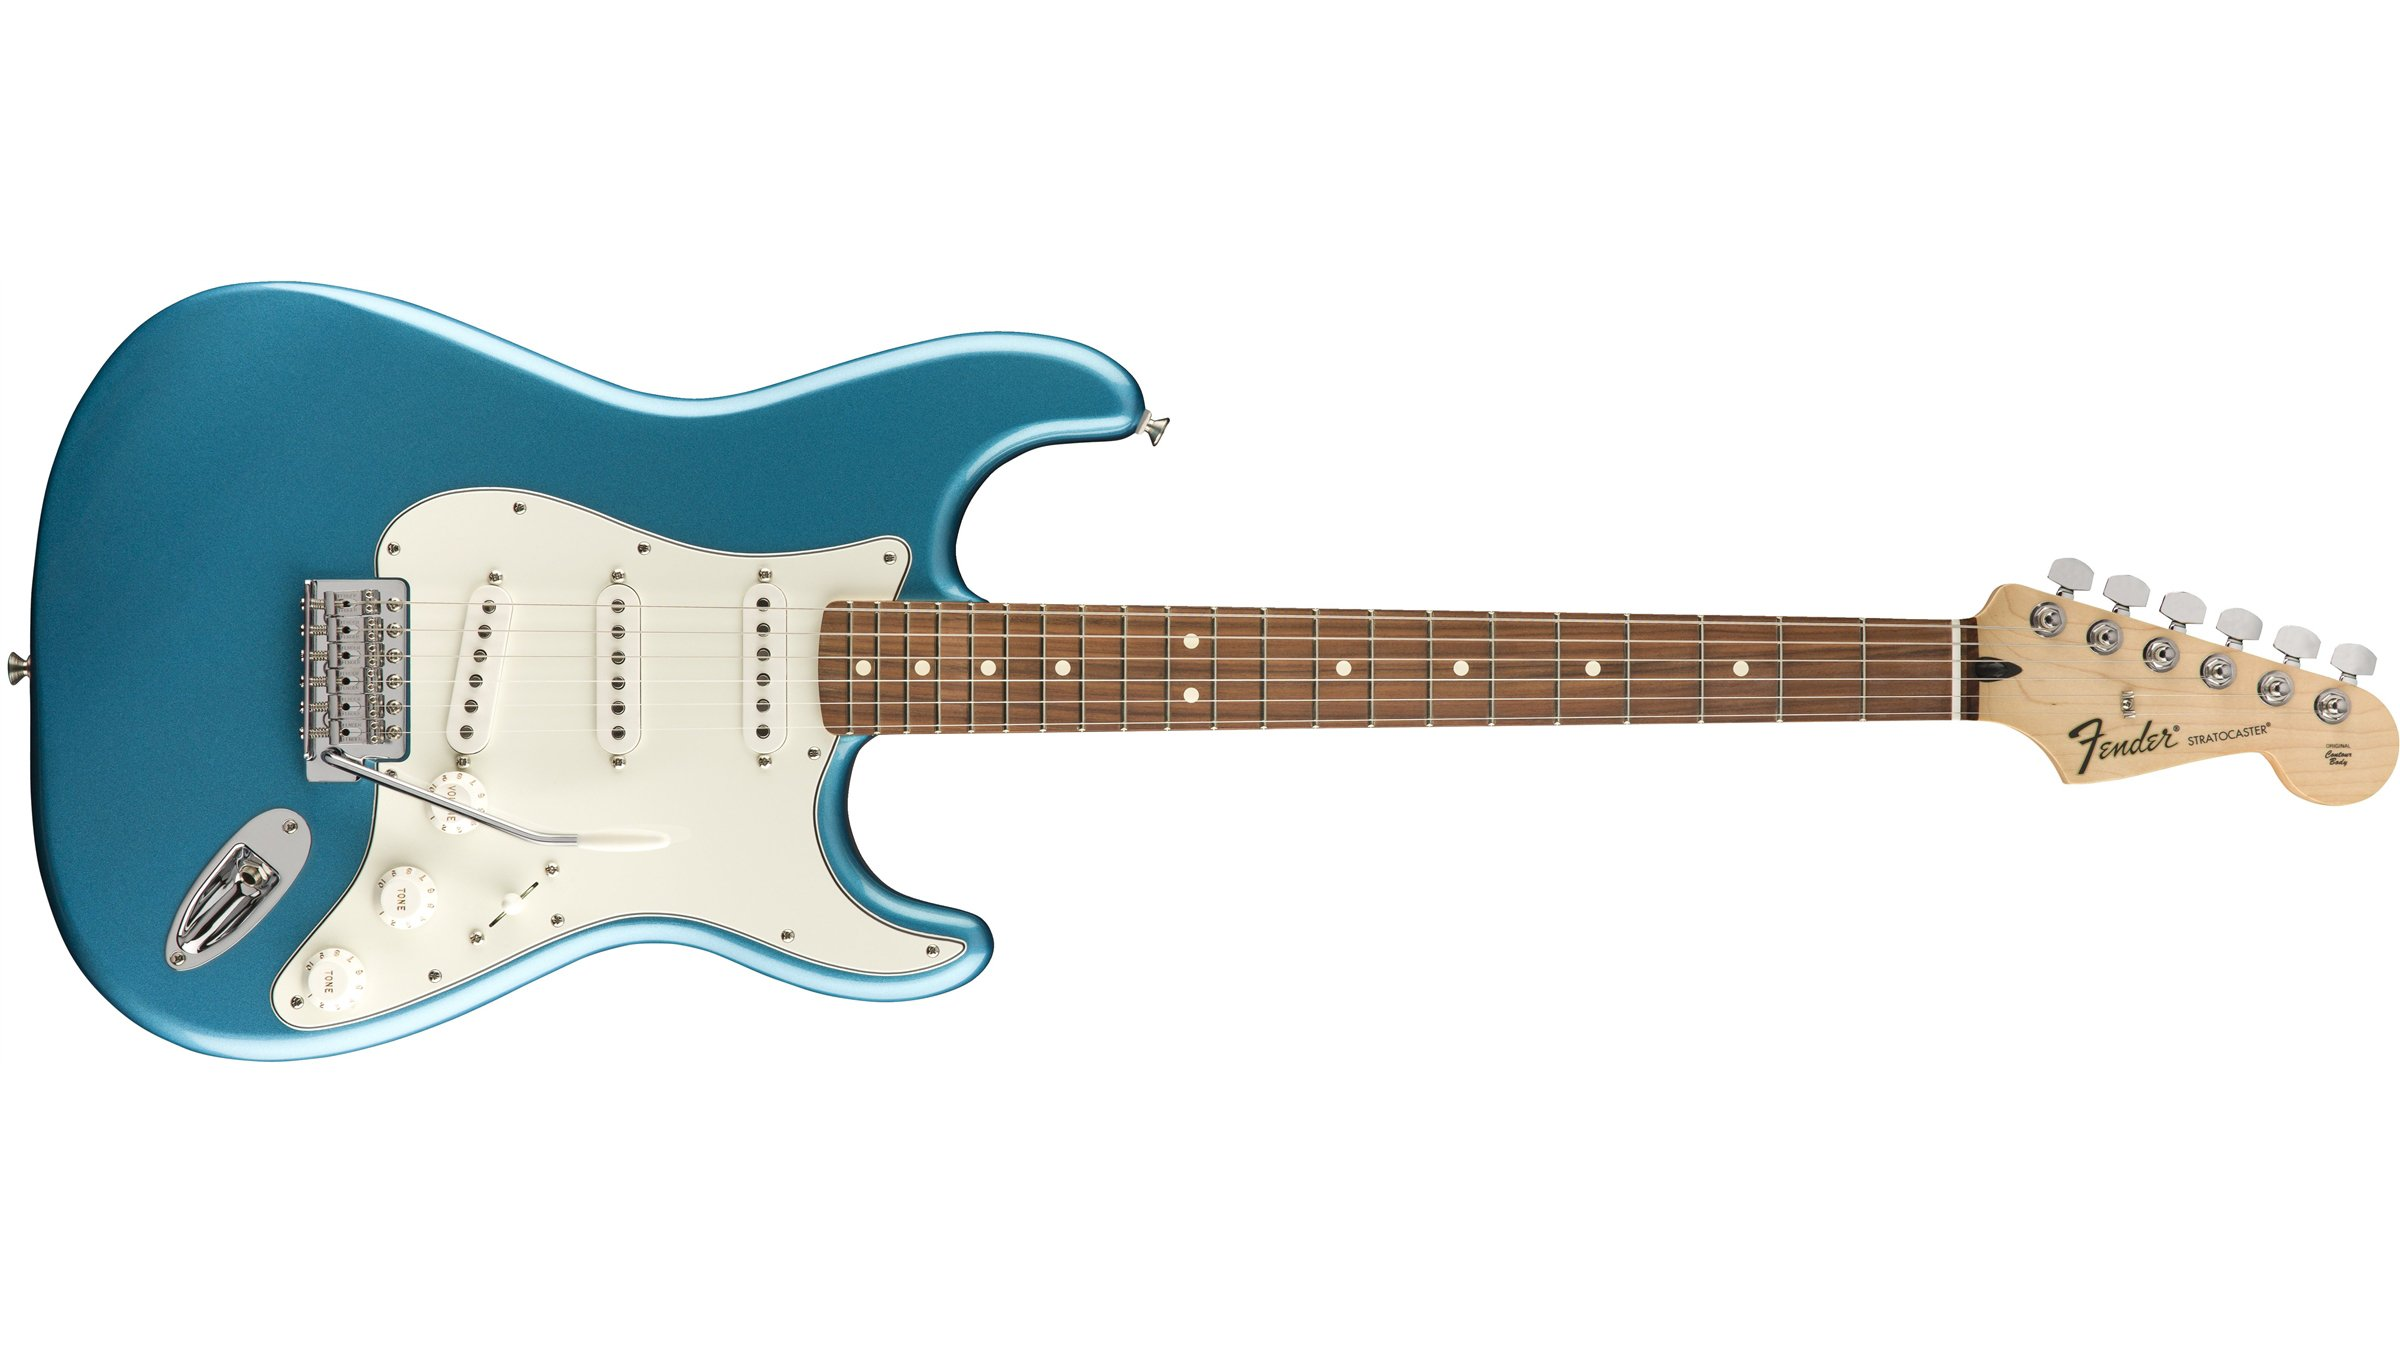 Best electric guitars 2018: The best electric guitars from